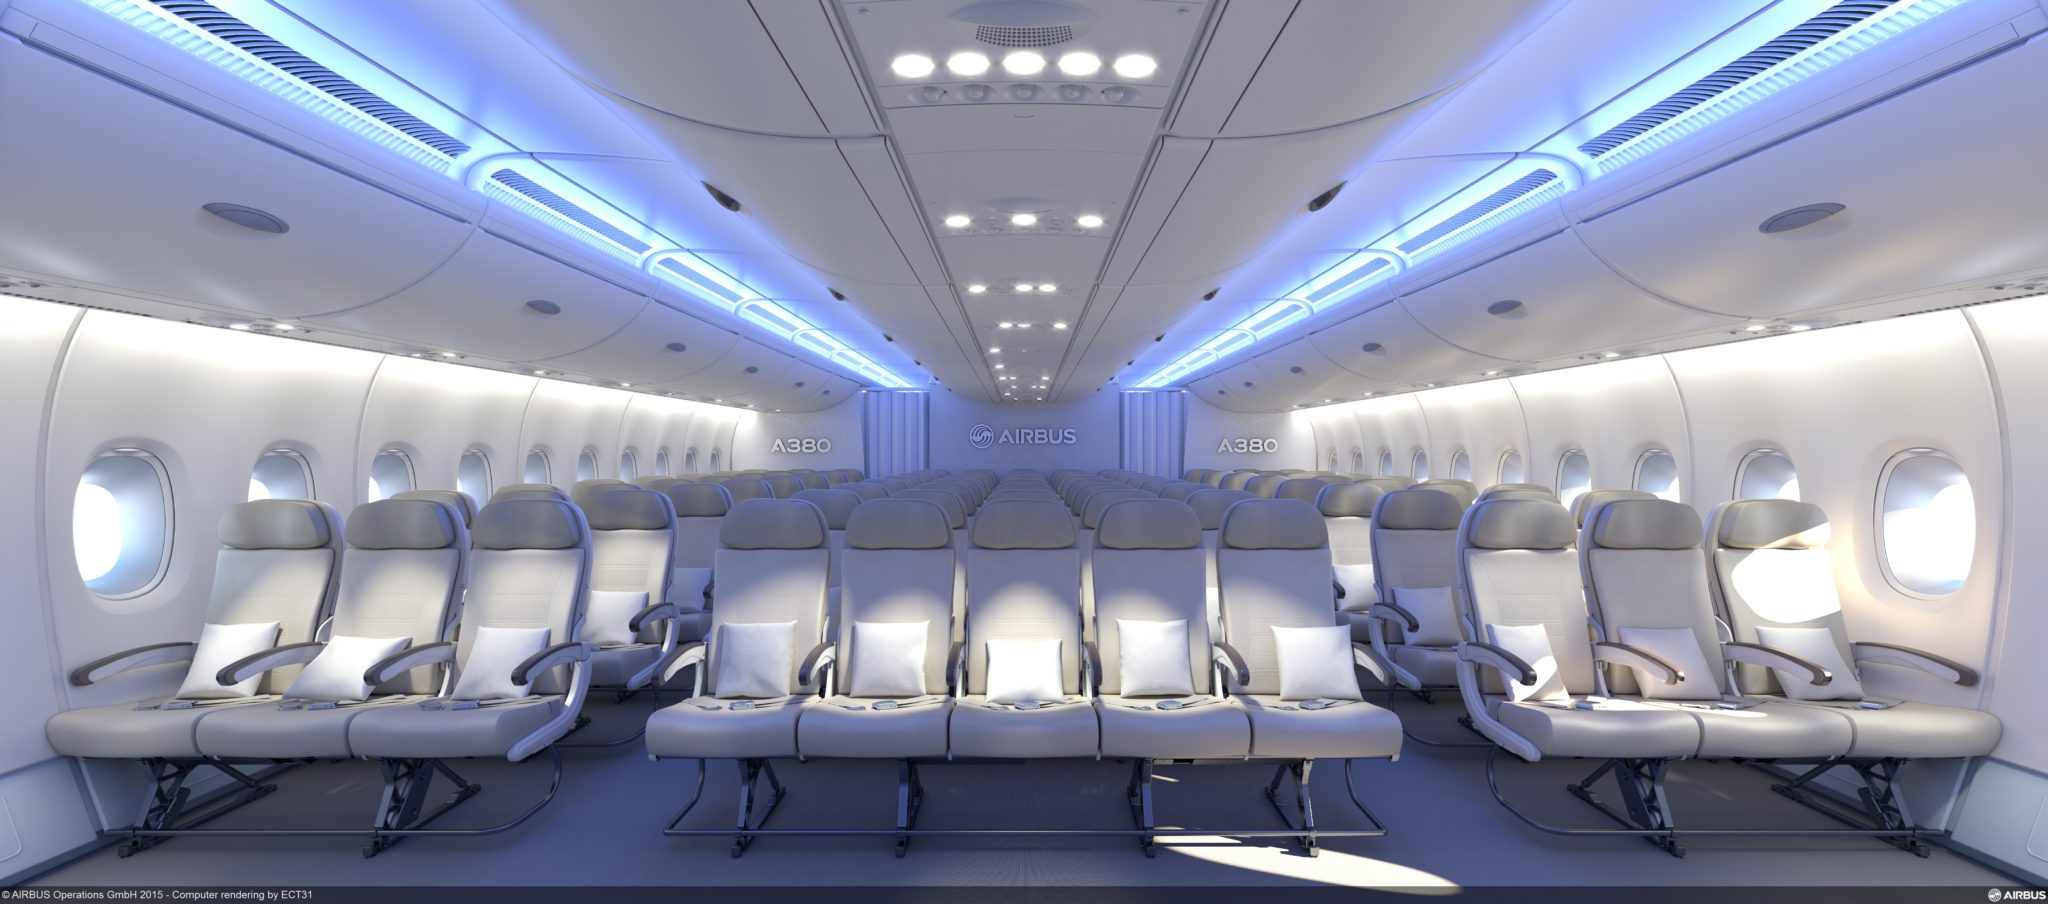 New Home Interiors Design Airbus Expects 11 Abreast A380 To Attract New Breed Of